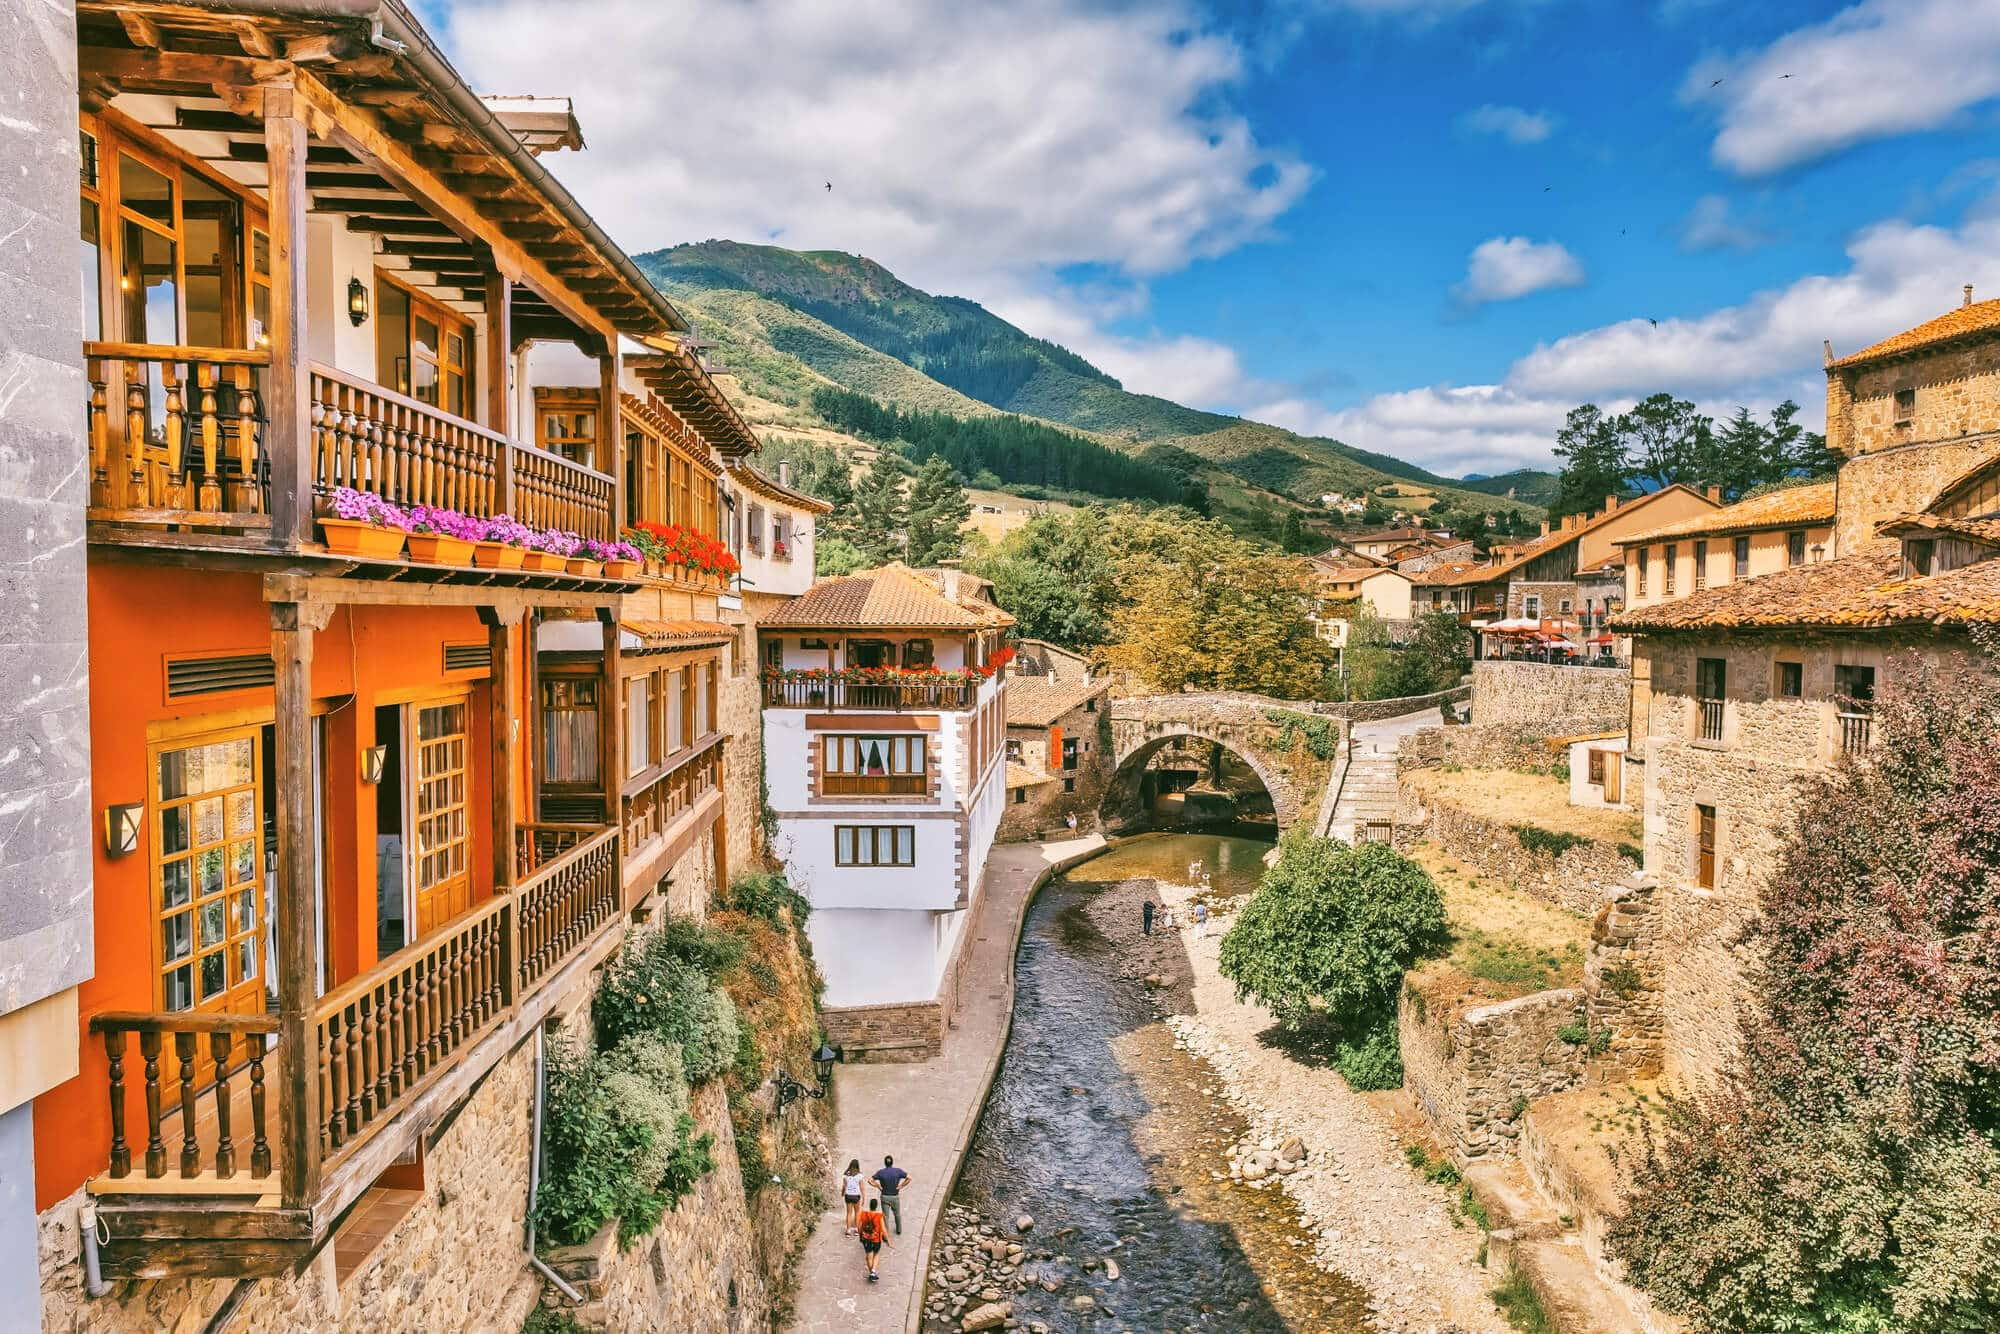 Potes - One of the most charming villages and a hidden gem in Spain